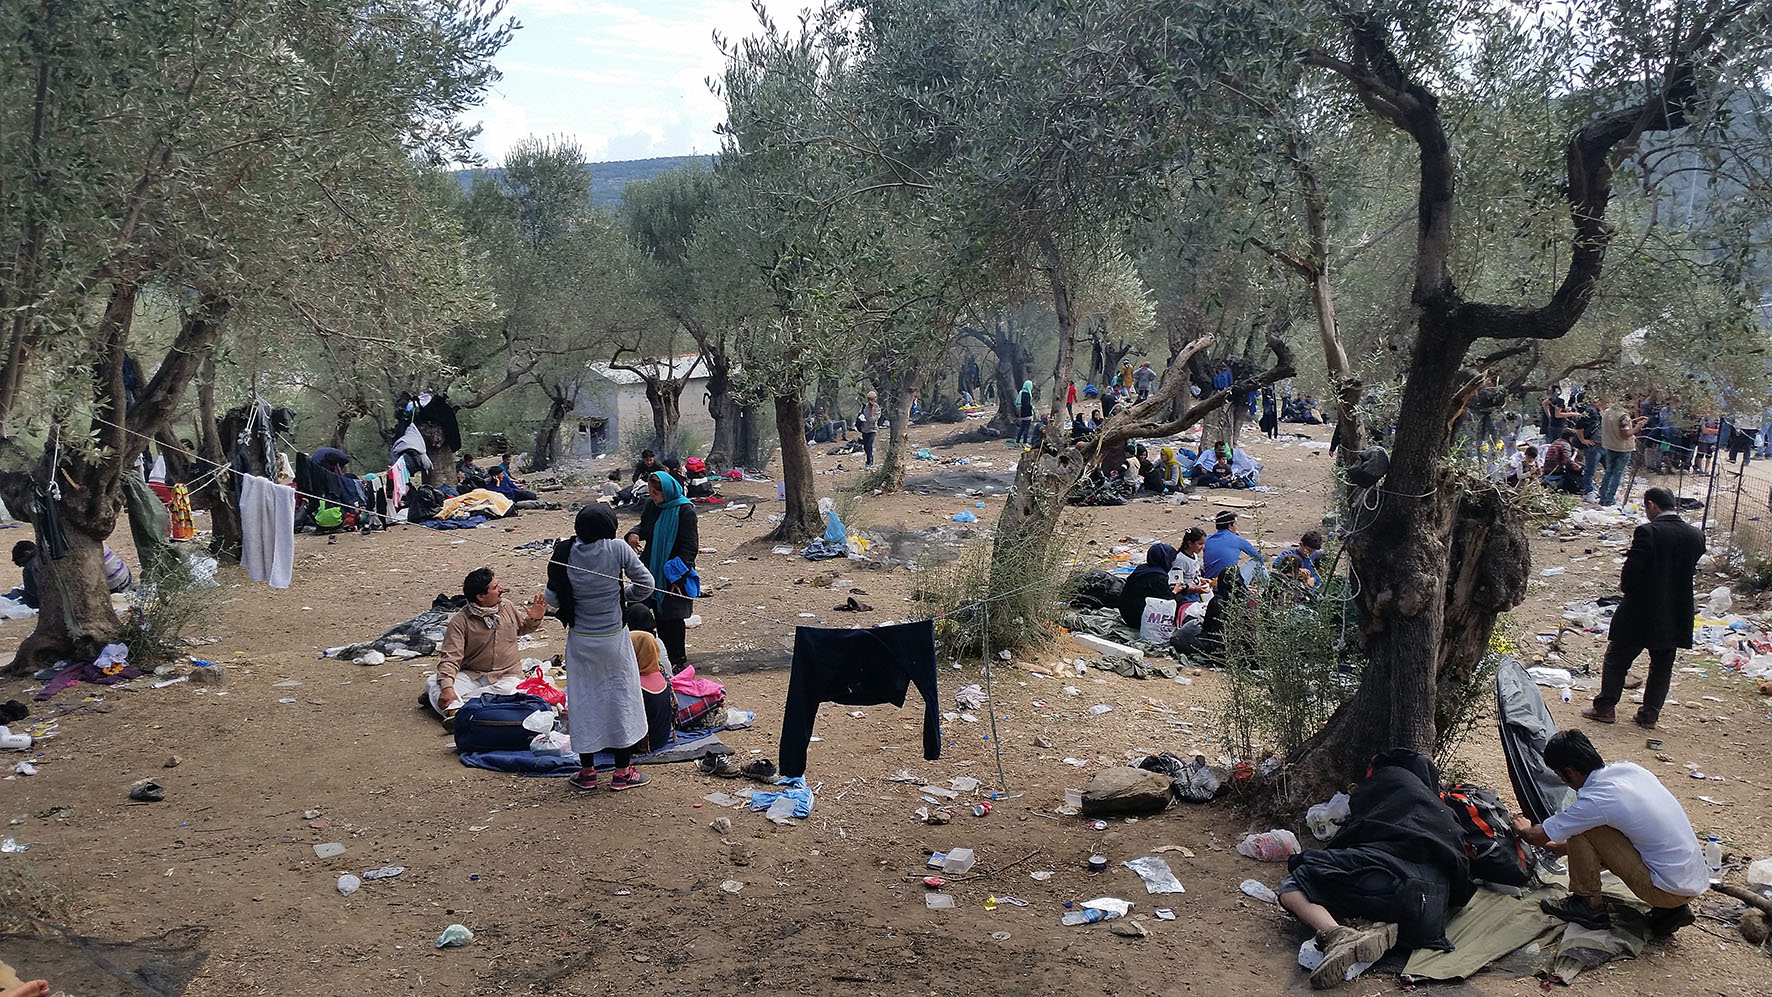 """samos single men Vanessa yarwood: stories of samos refugee camp—""""the situation seems to be   and who had witnessed the death of two young men who tried to swim to shore   one constant here is the ability of the situation to change."""